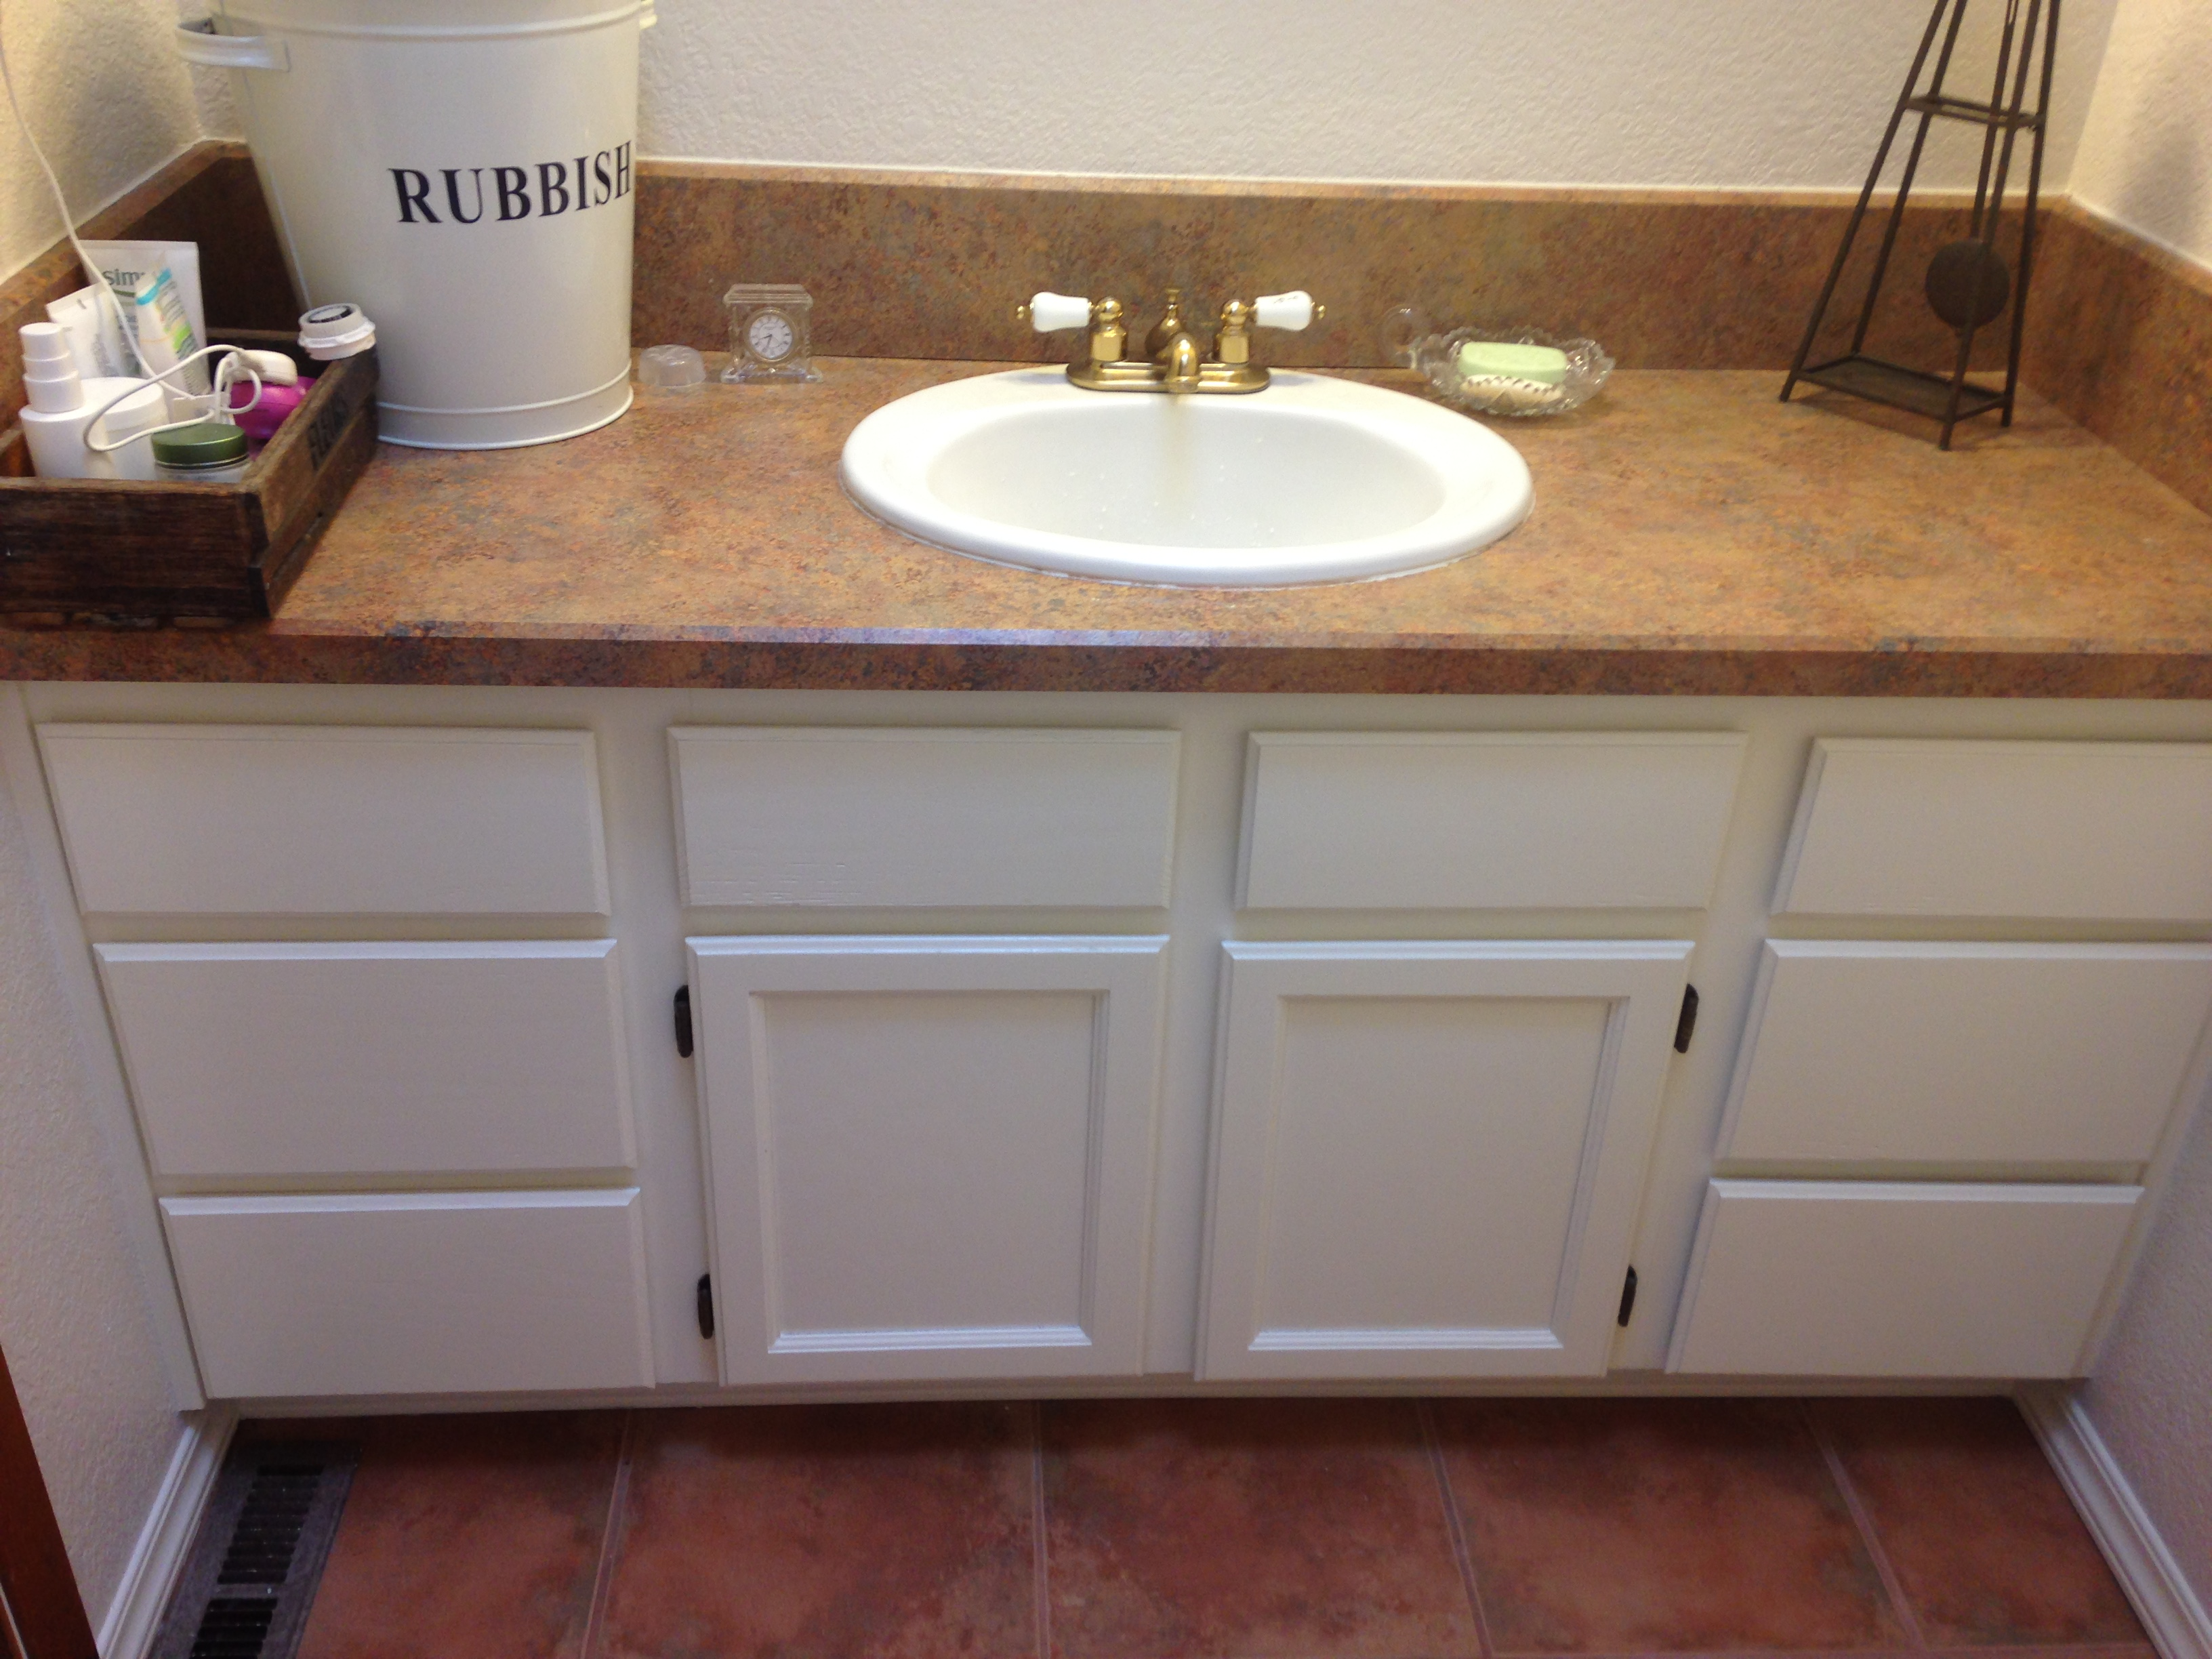 Bathroom Cabinets After